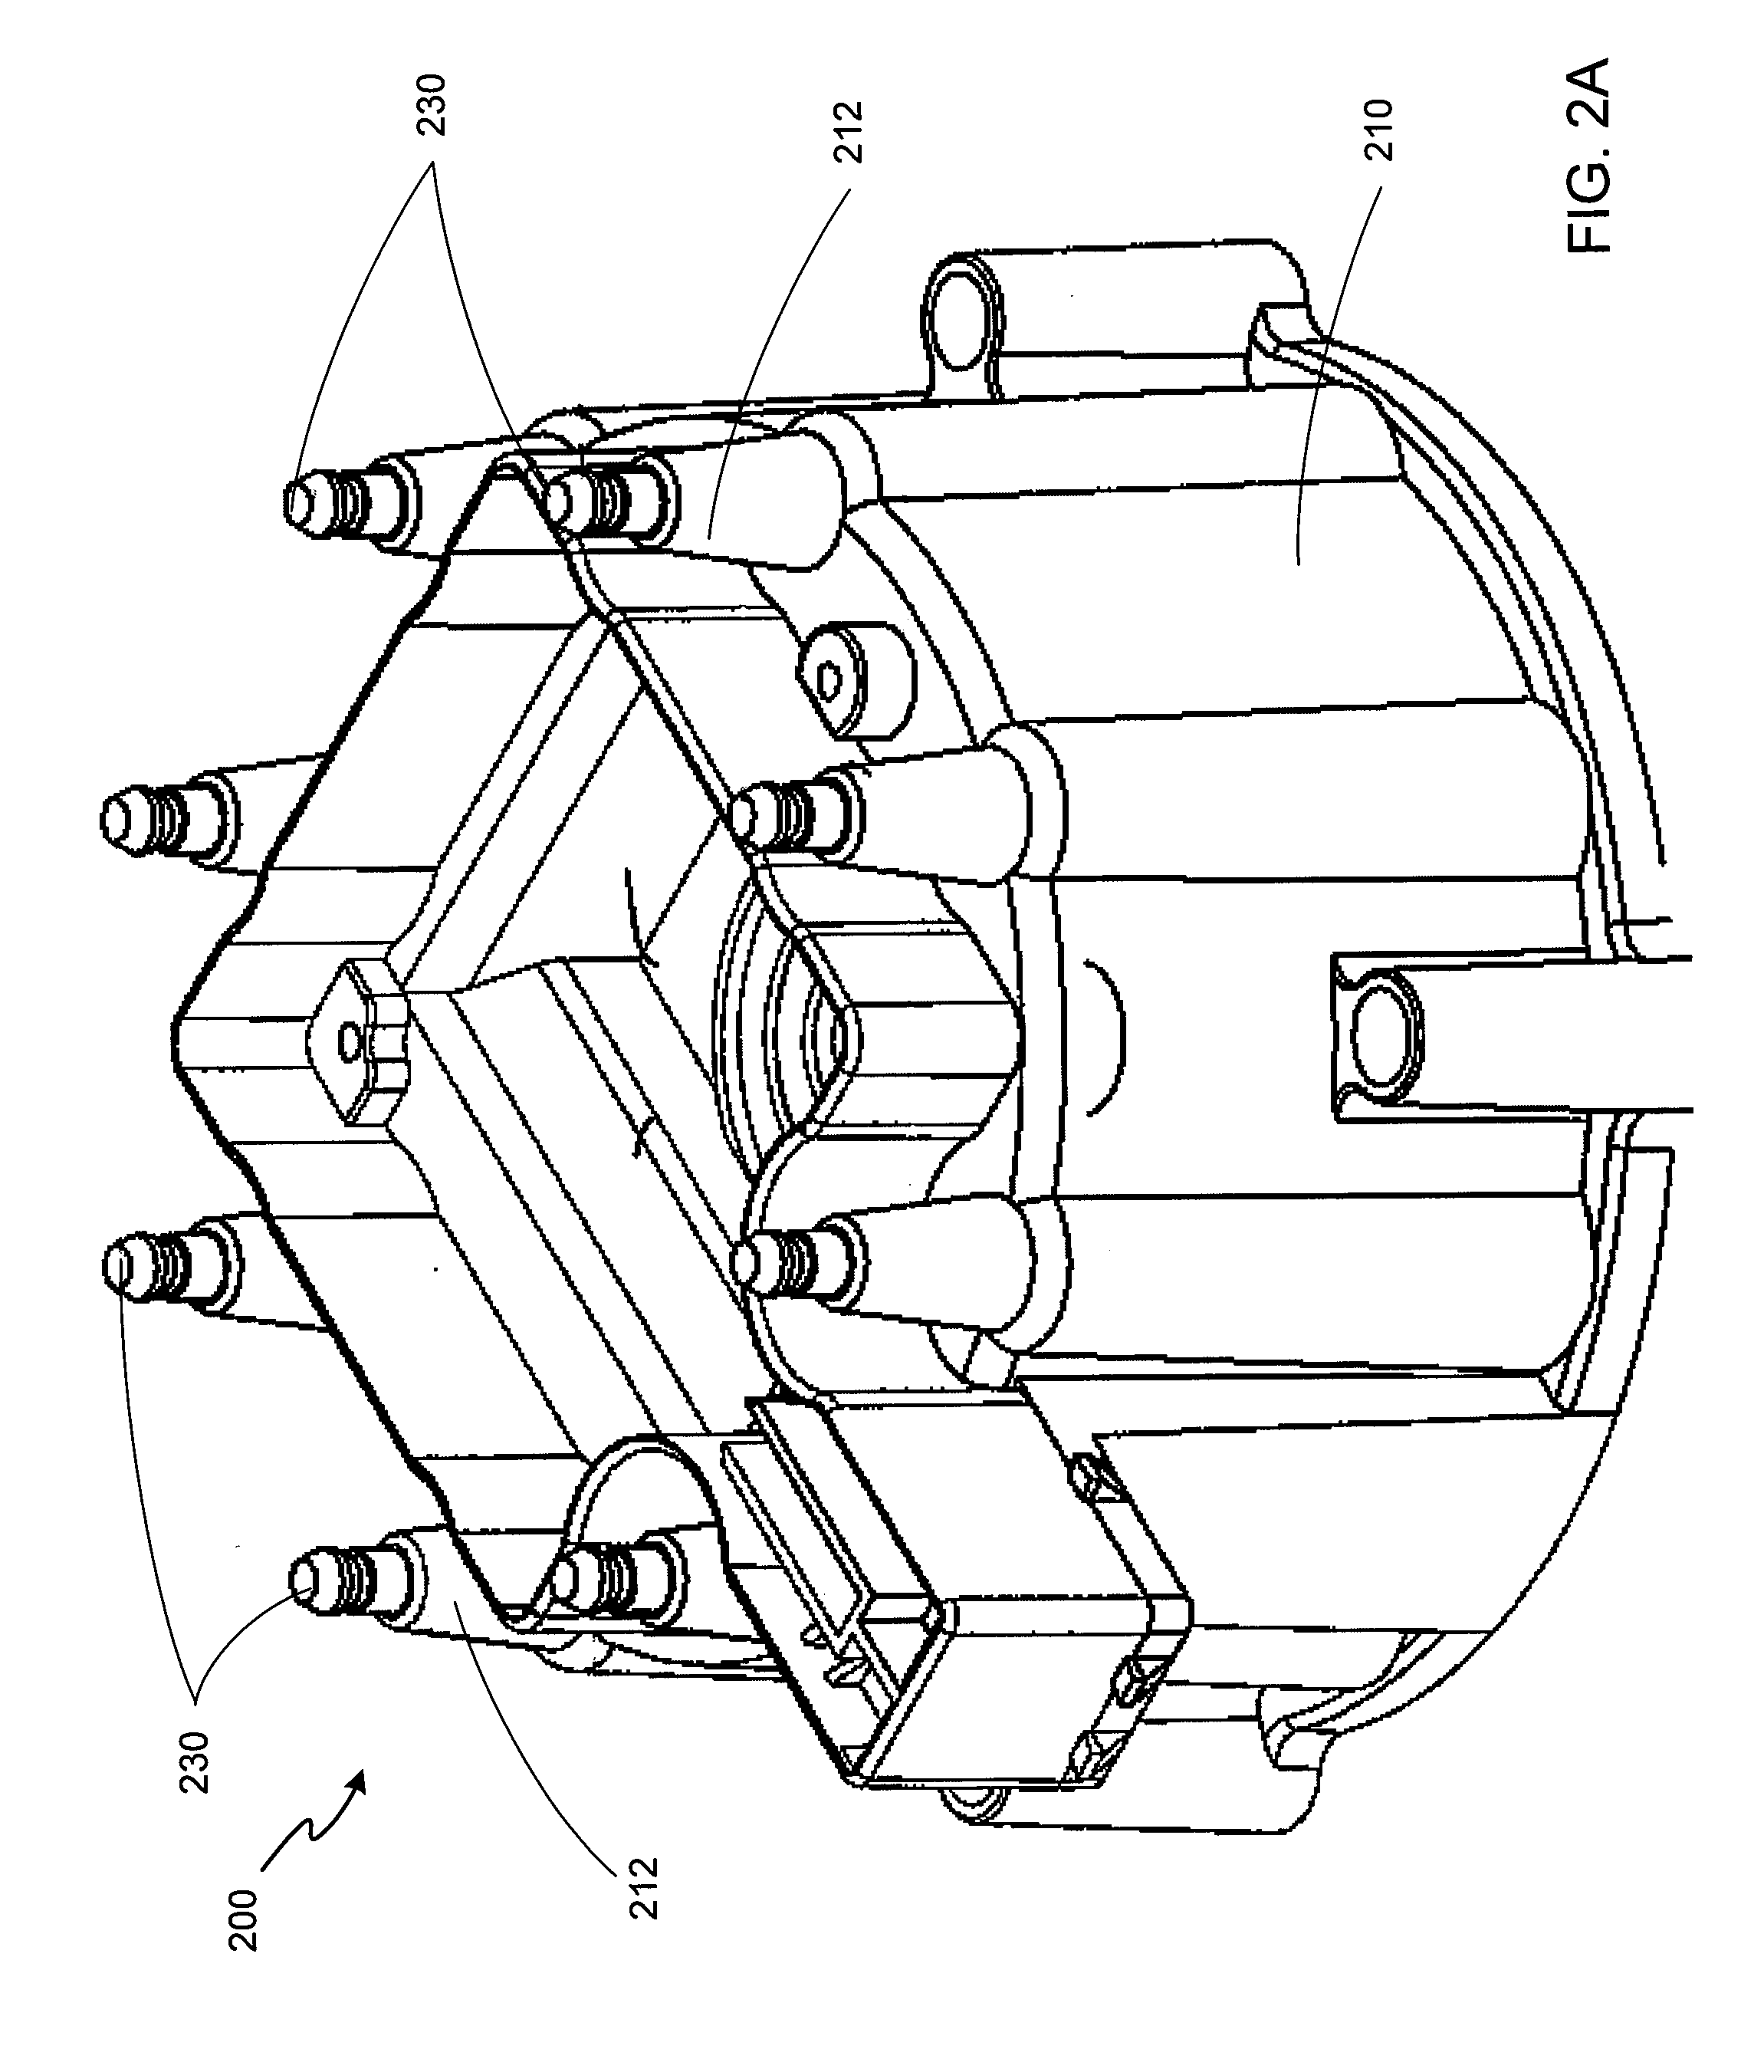 5 7 distributor cap diagram 1999 jeep grand cherokee limited stereo wiring of schematic gm hei firing order diagrams hubs car